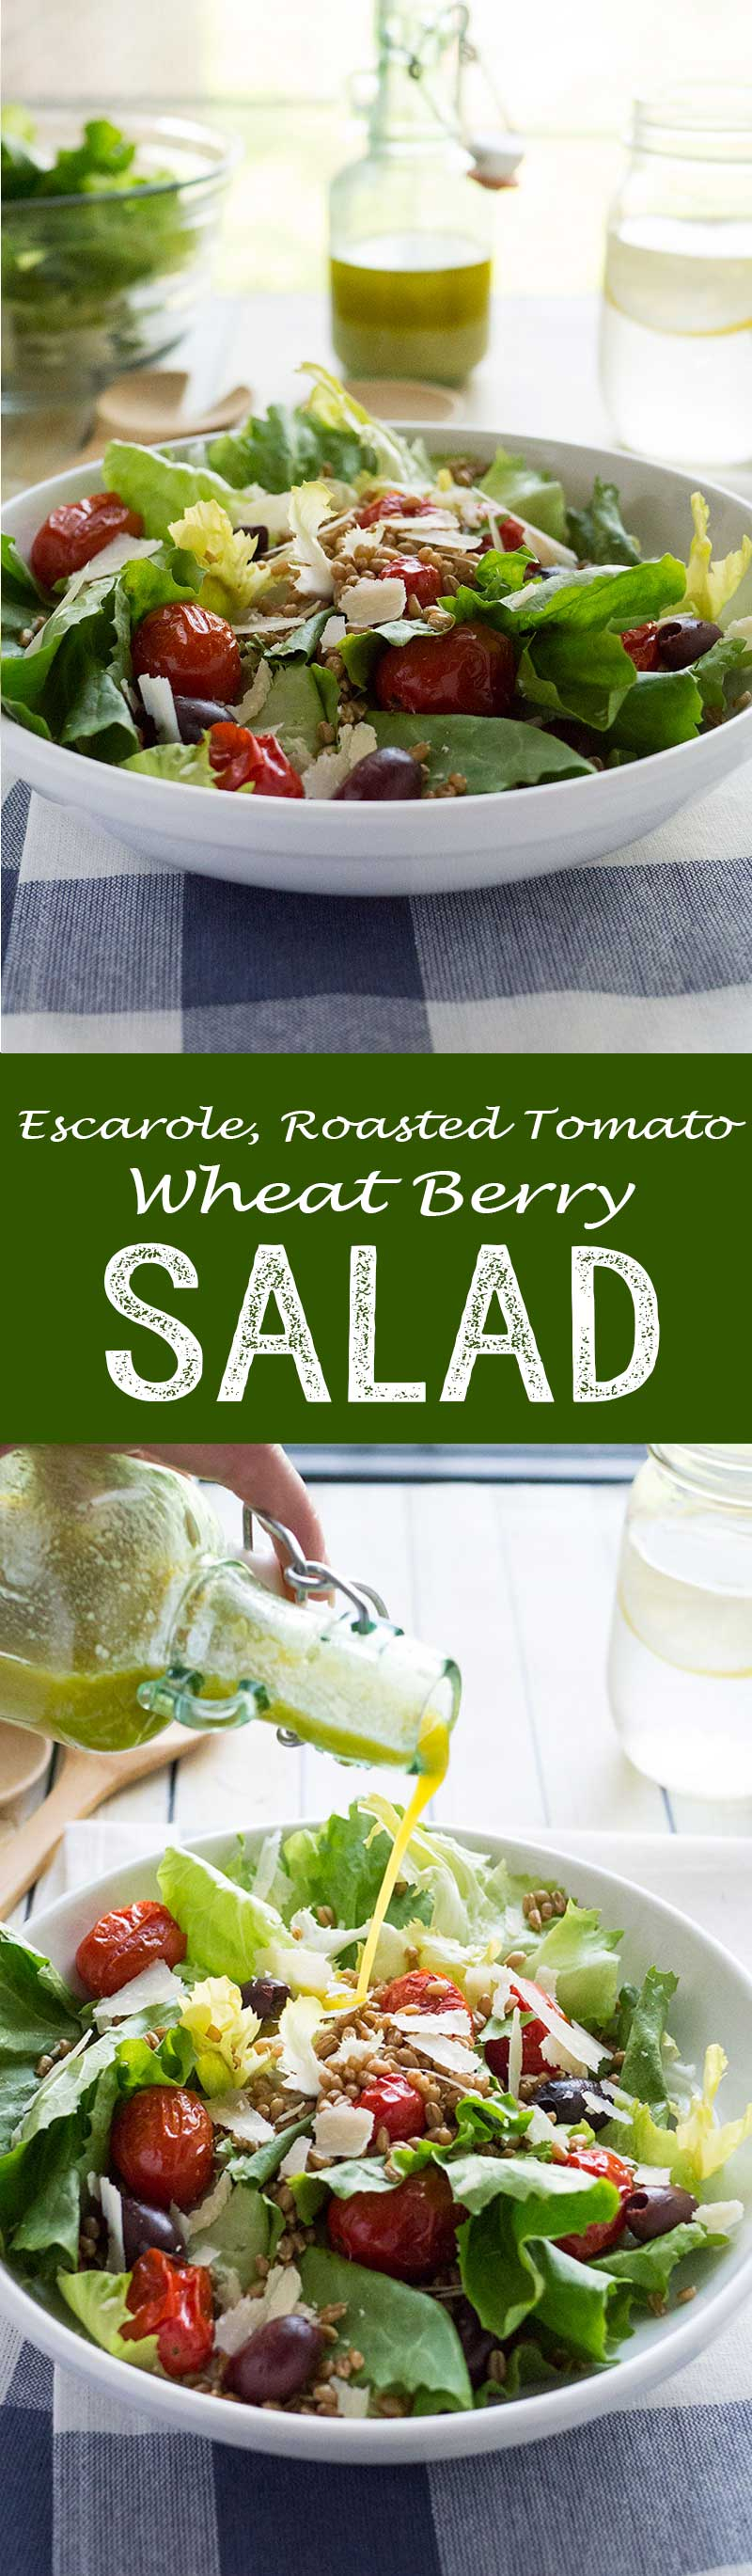 Escarole roasted tomato wheat berry salad